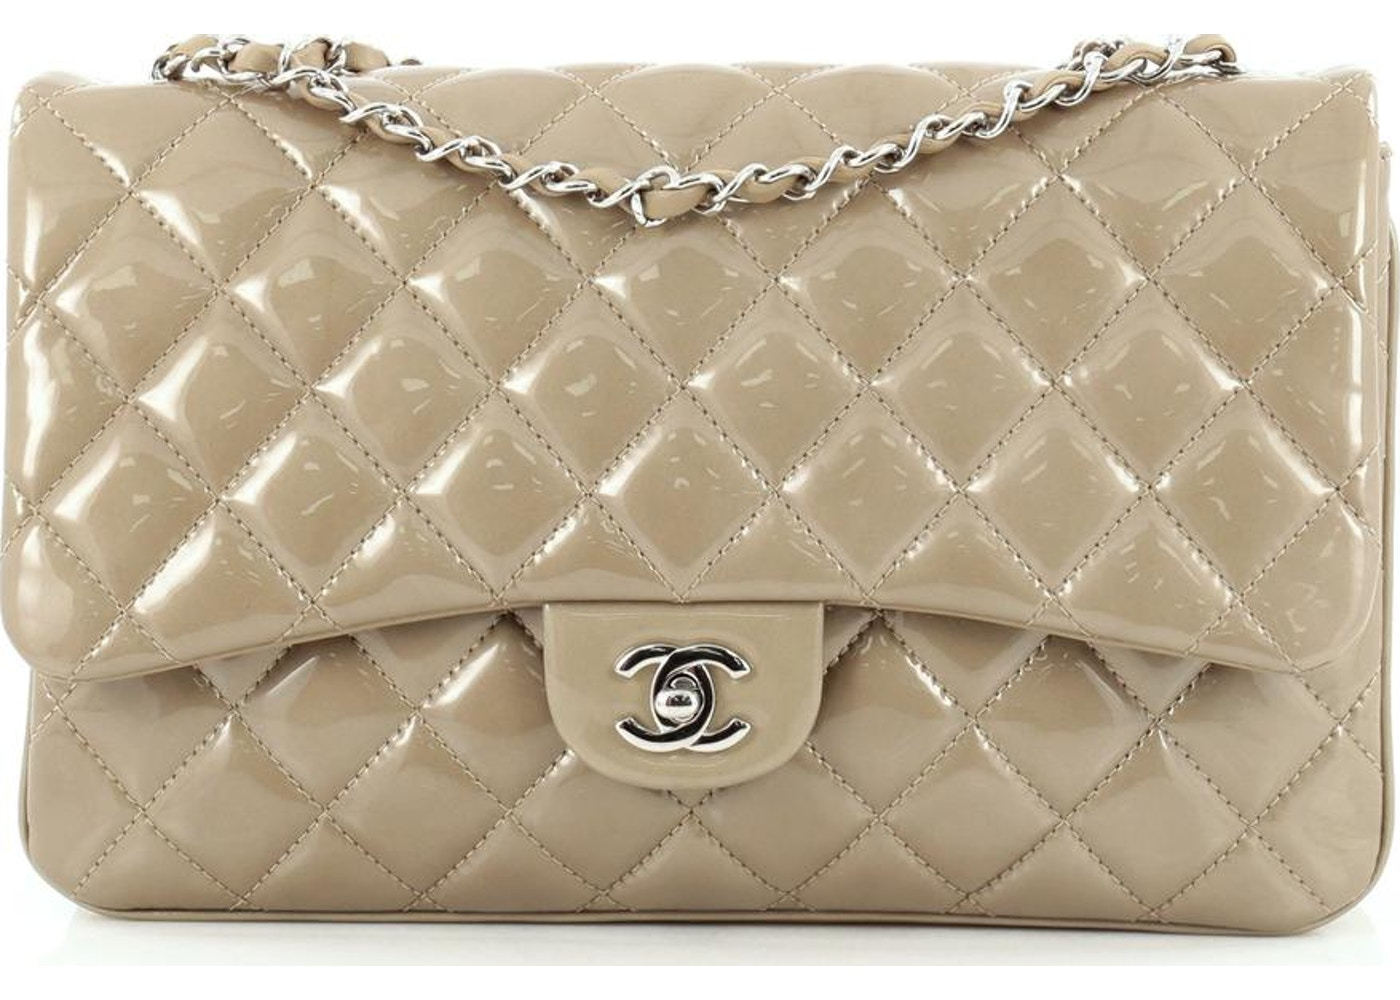 209bcbf90a97 Chanel 3 Bag Flap Quilted Diamond Jumbo Beige